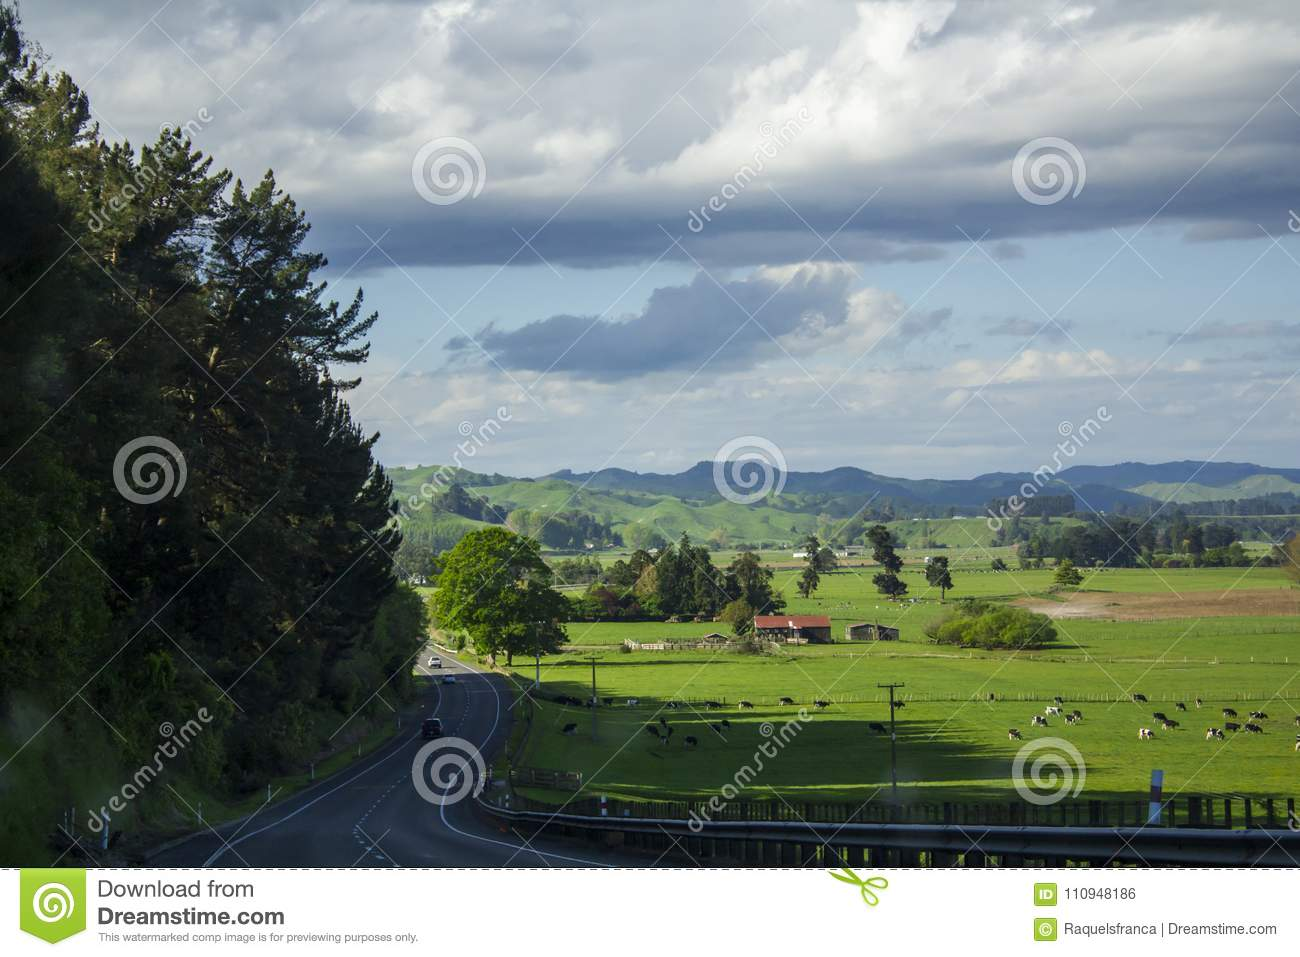 Stunning landscape with vibrant green meadows and cows grazing